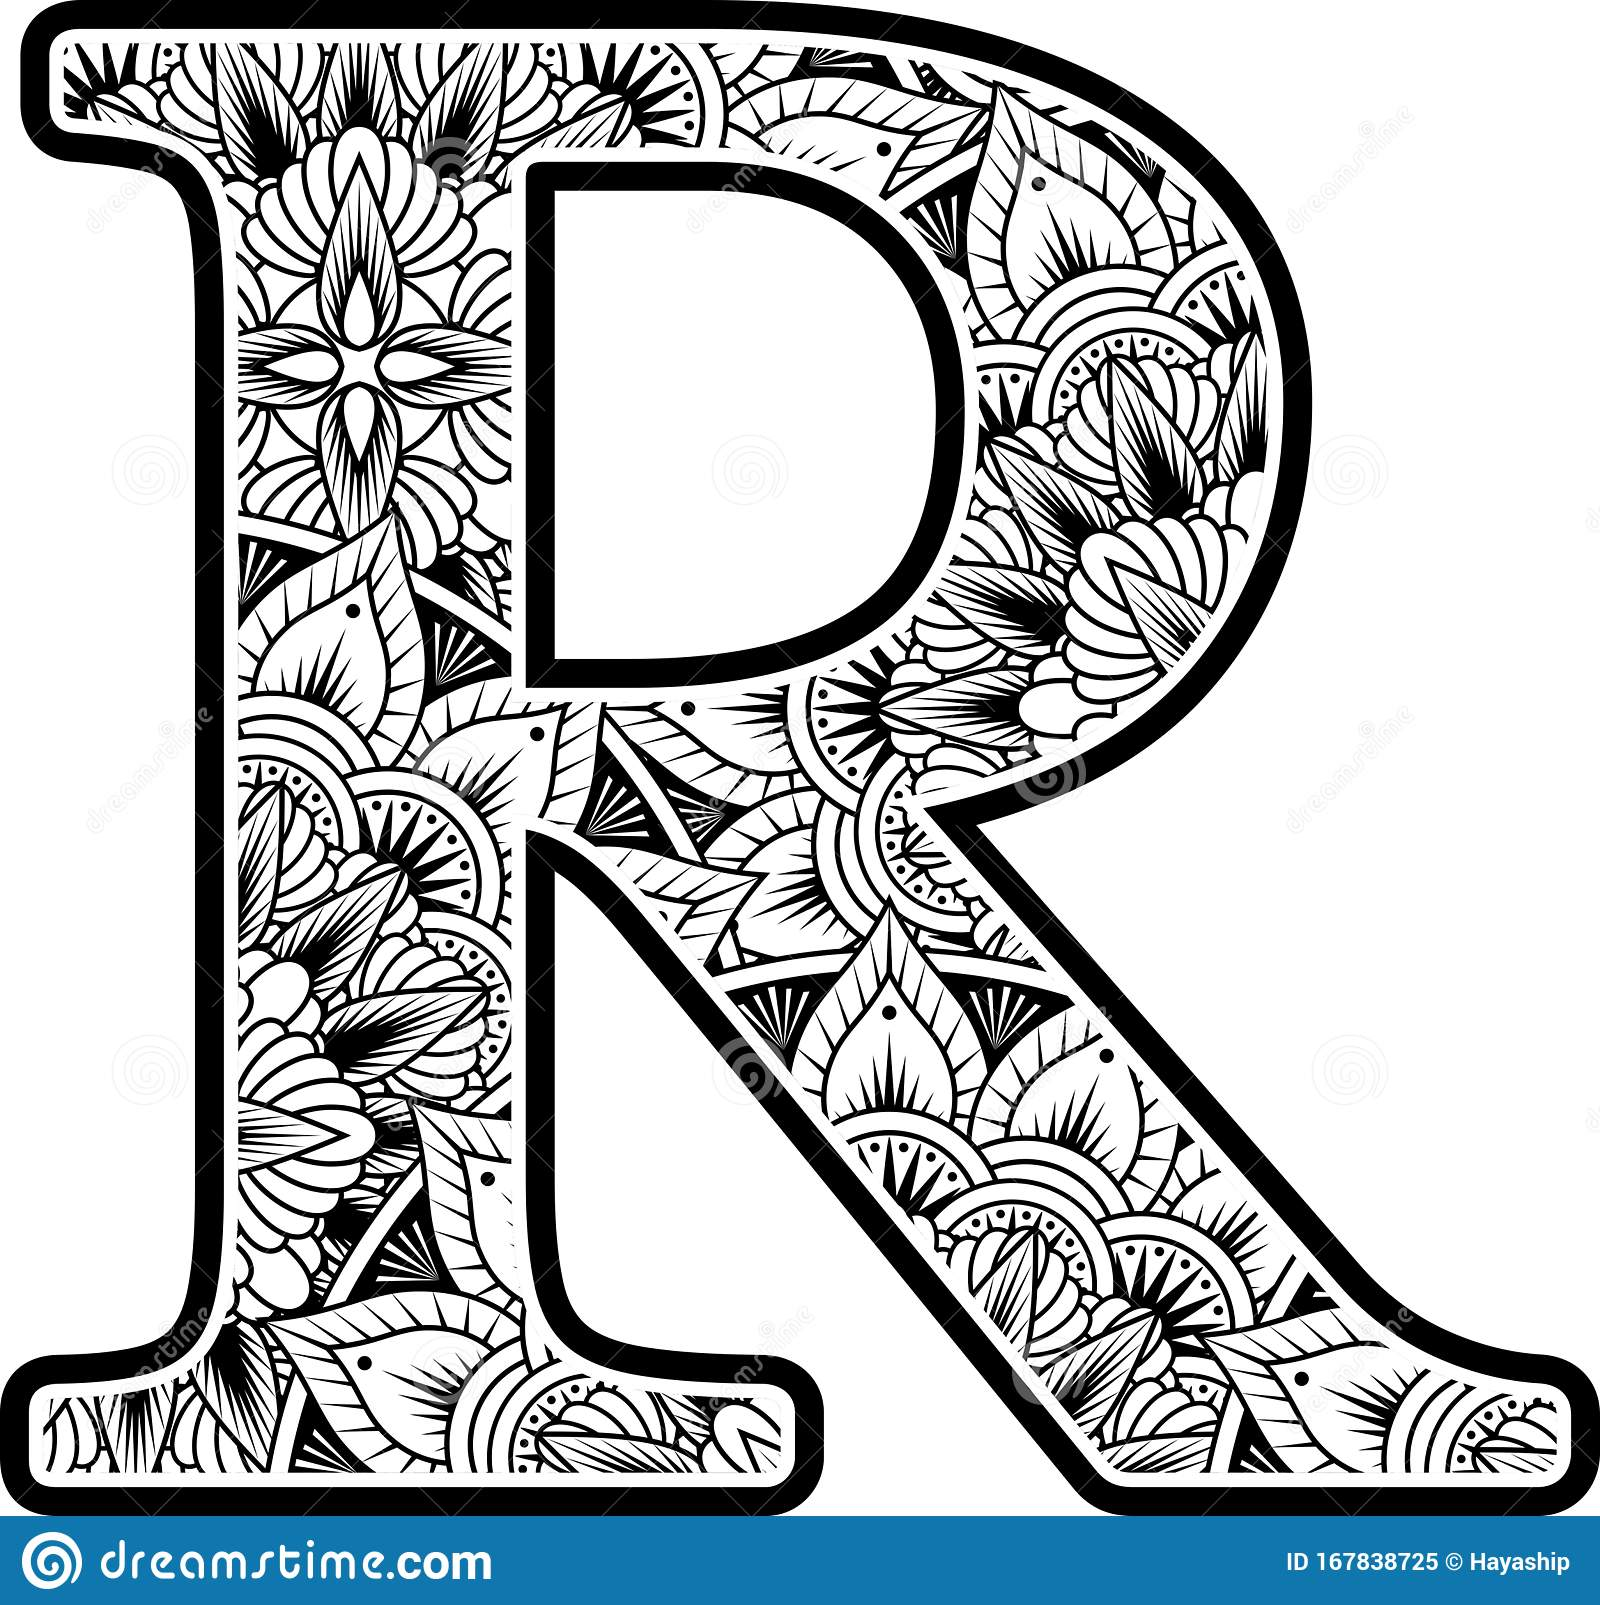 mandala inspiration abstract flowers capital letter r